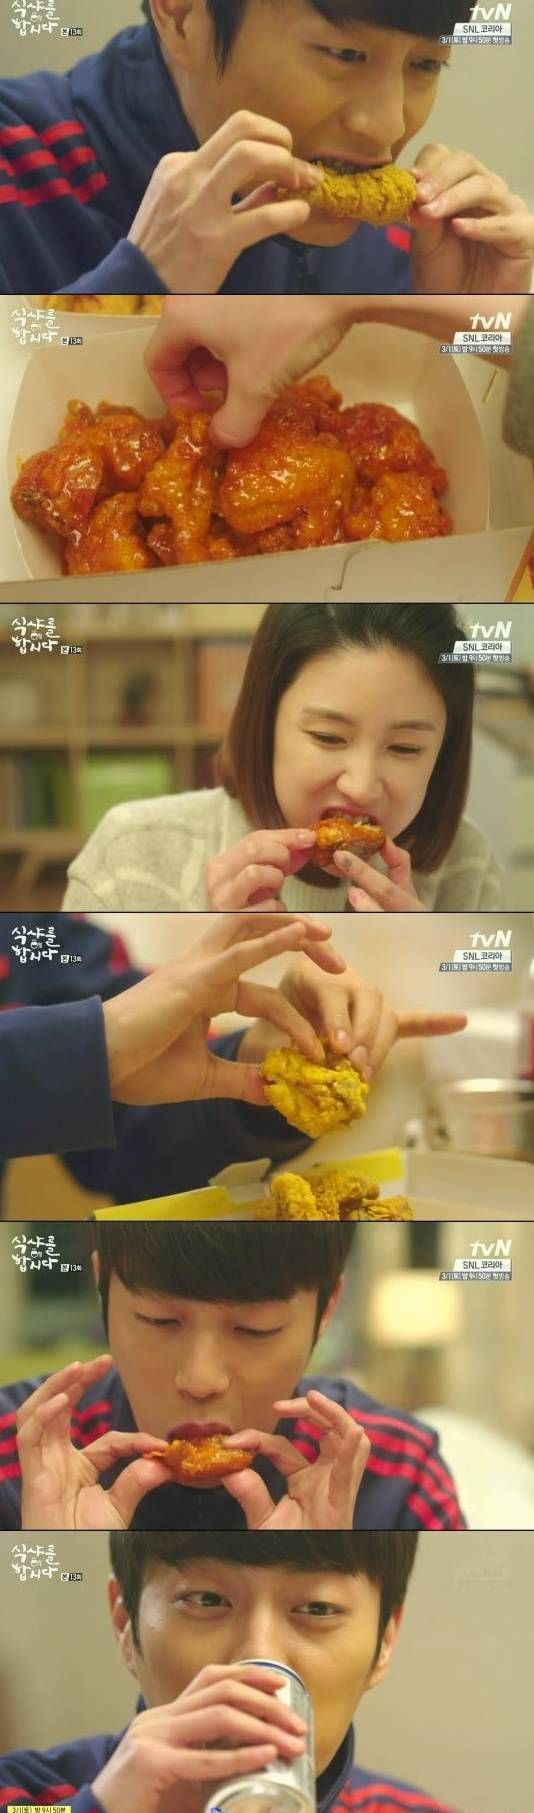 Let's Eat (식샤를 합시다) Korean - Drama - Episode 13 - Picture @ HanCinema :: The Korean Movie and Drama Database